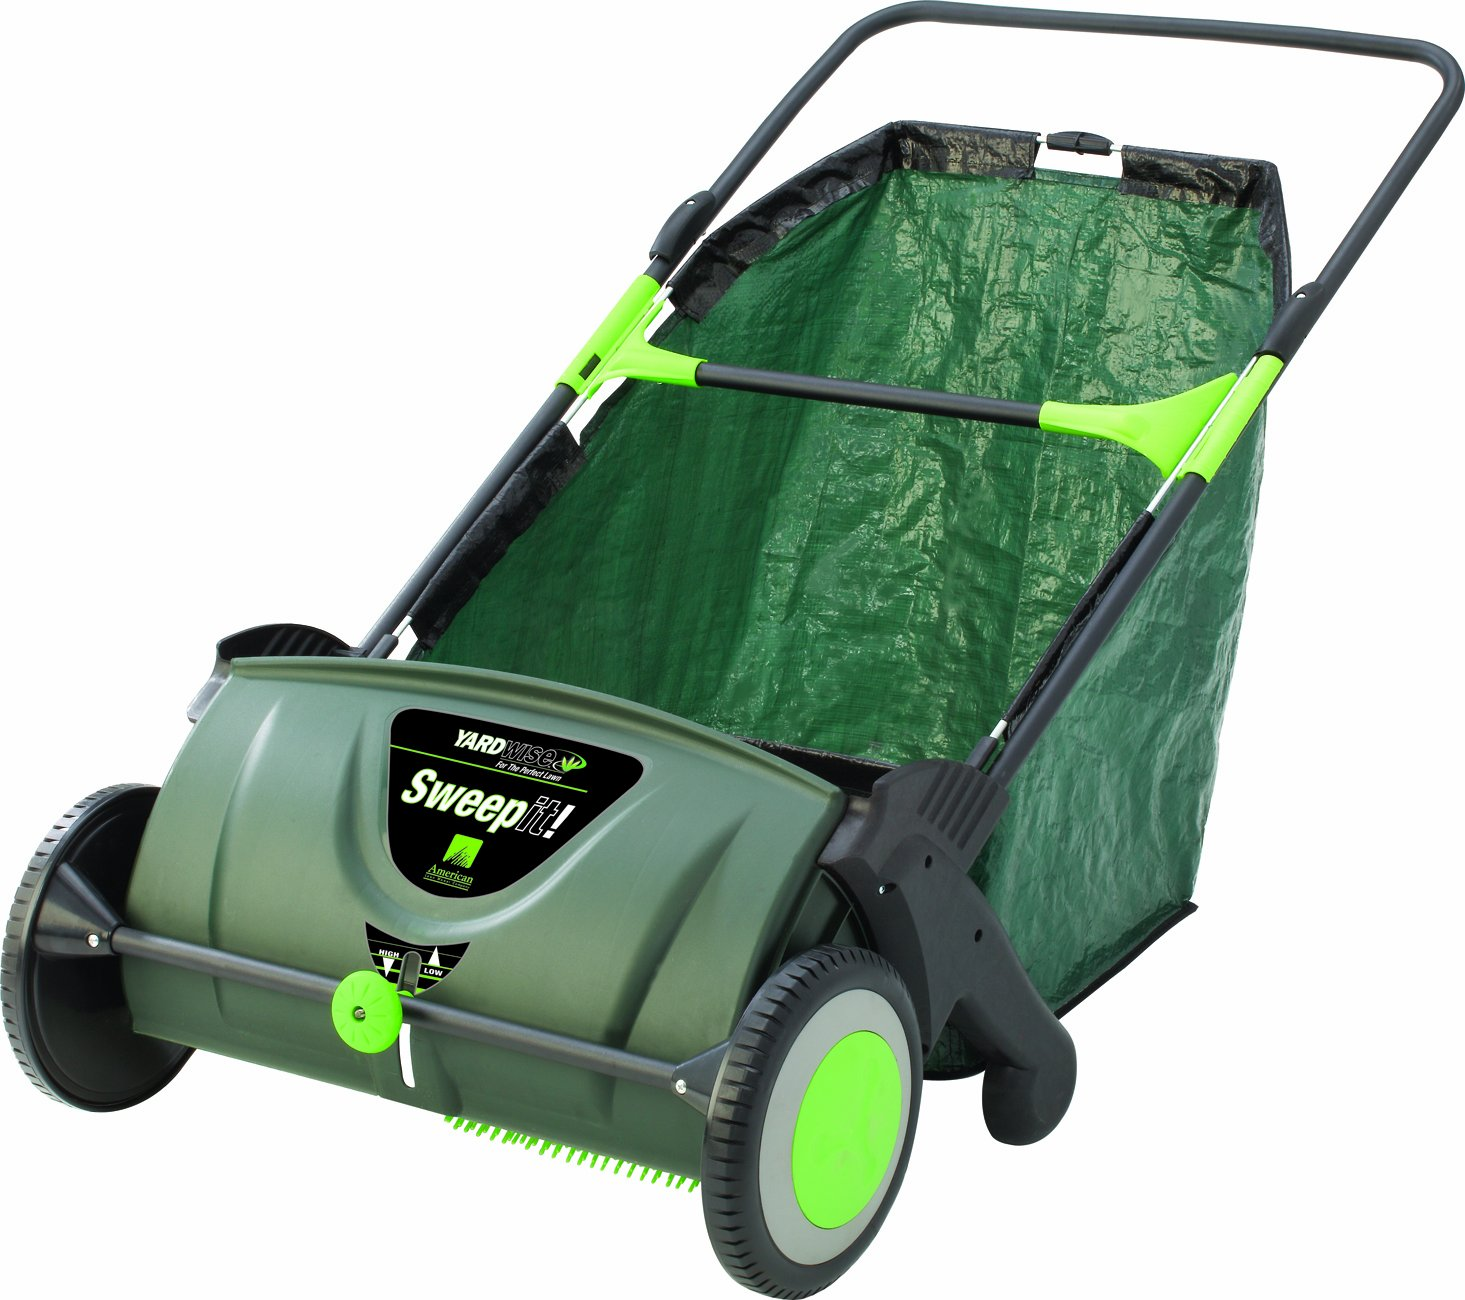 Yardwise Sweep it 23630-YW Push Lawn Sweeper, 21-Inch